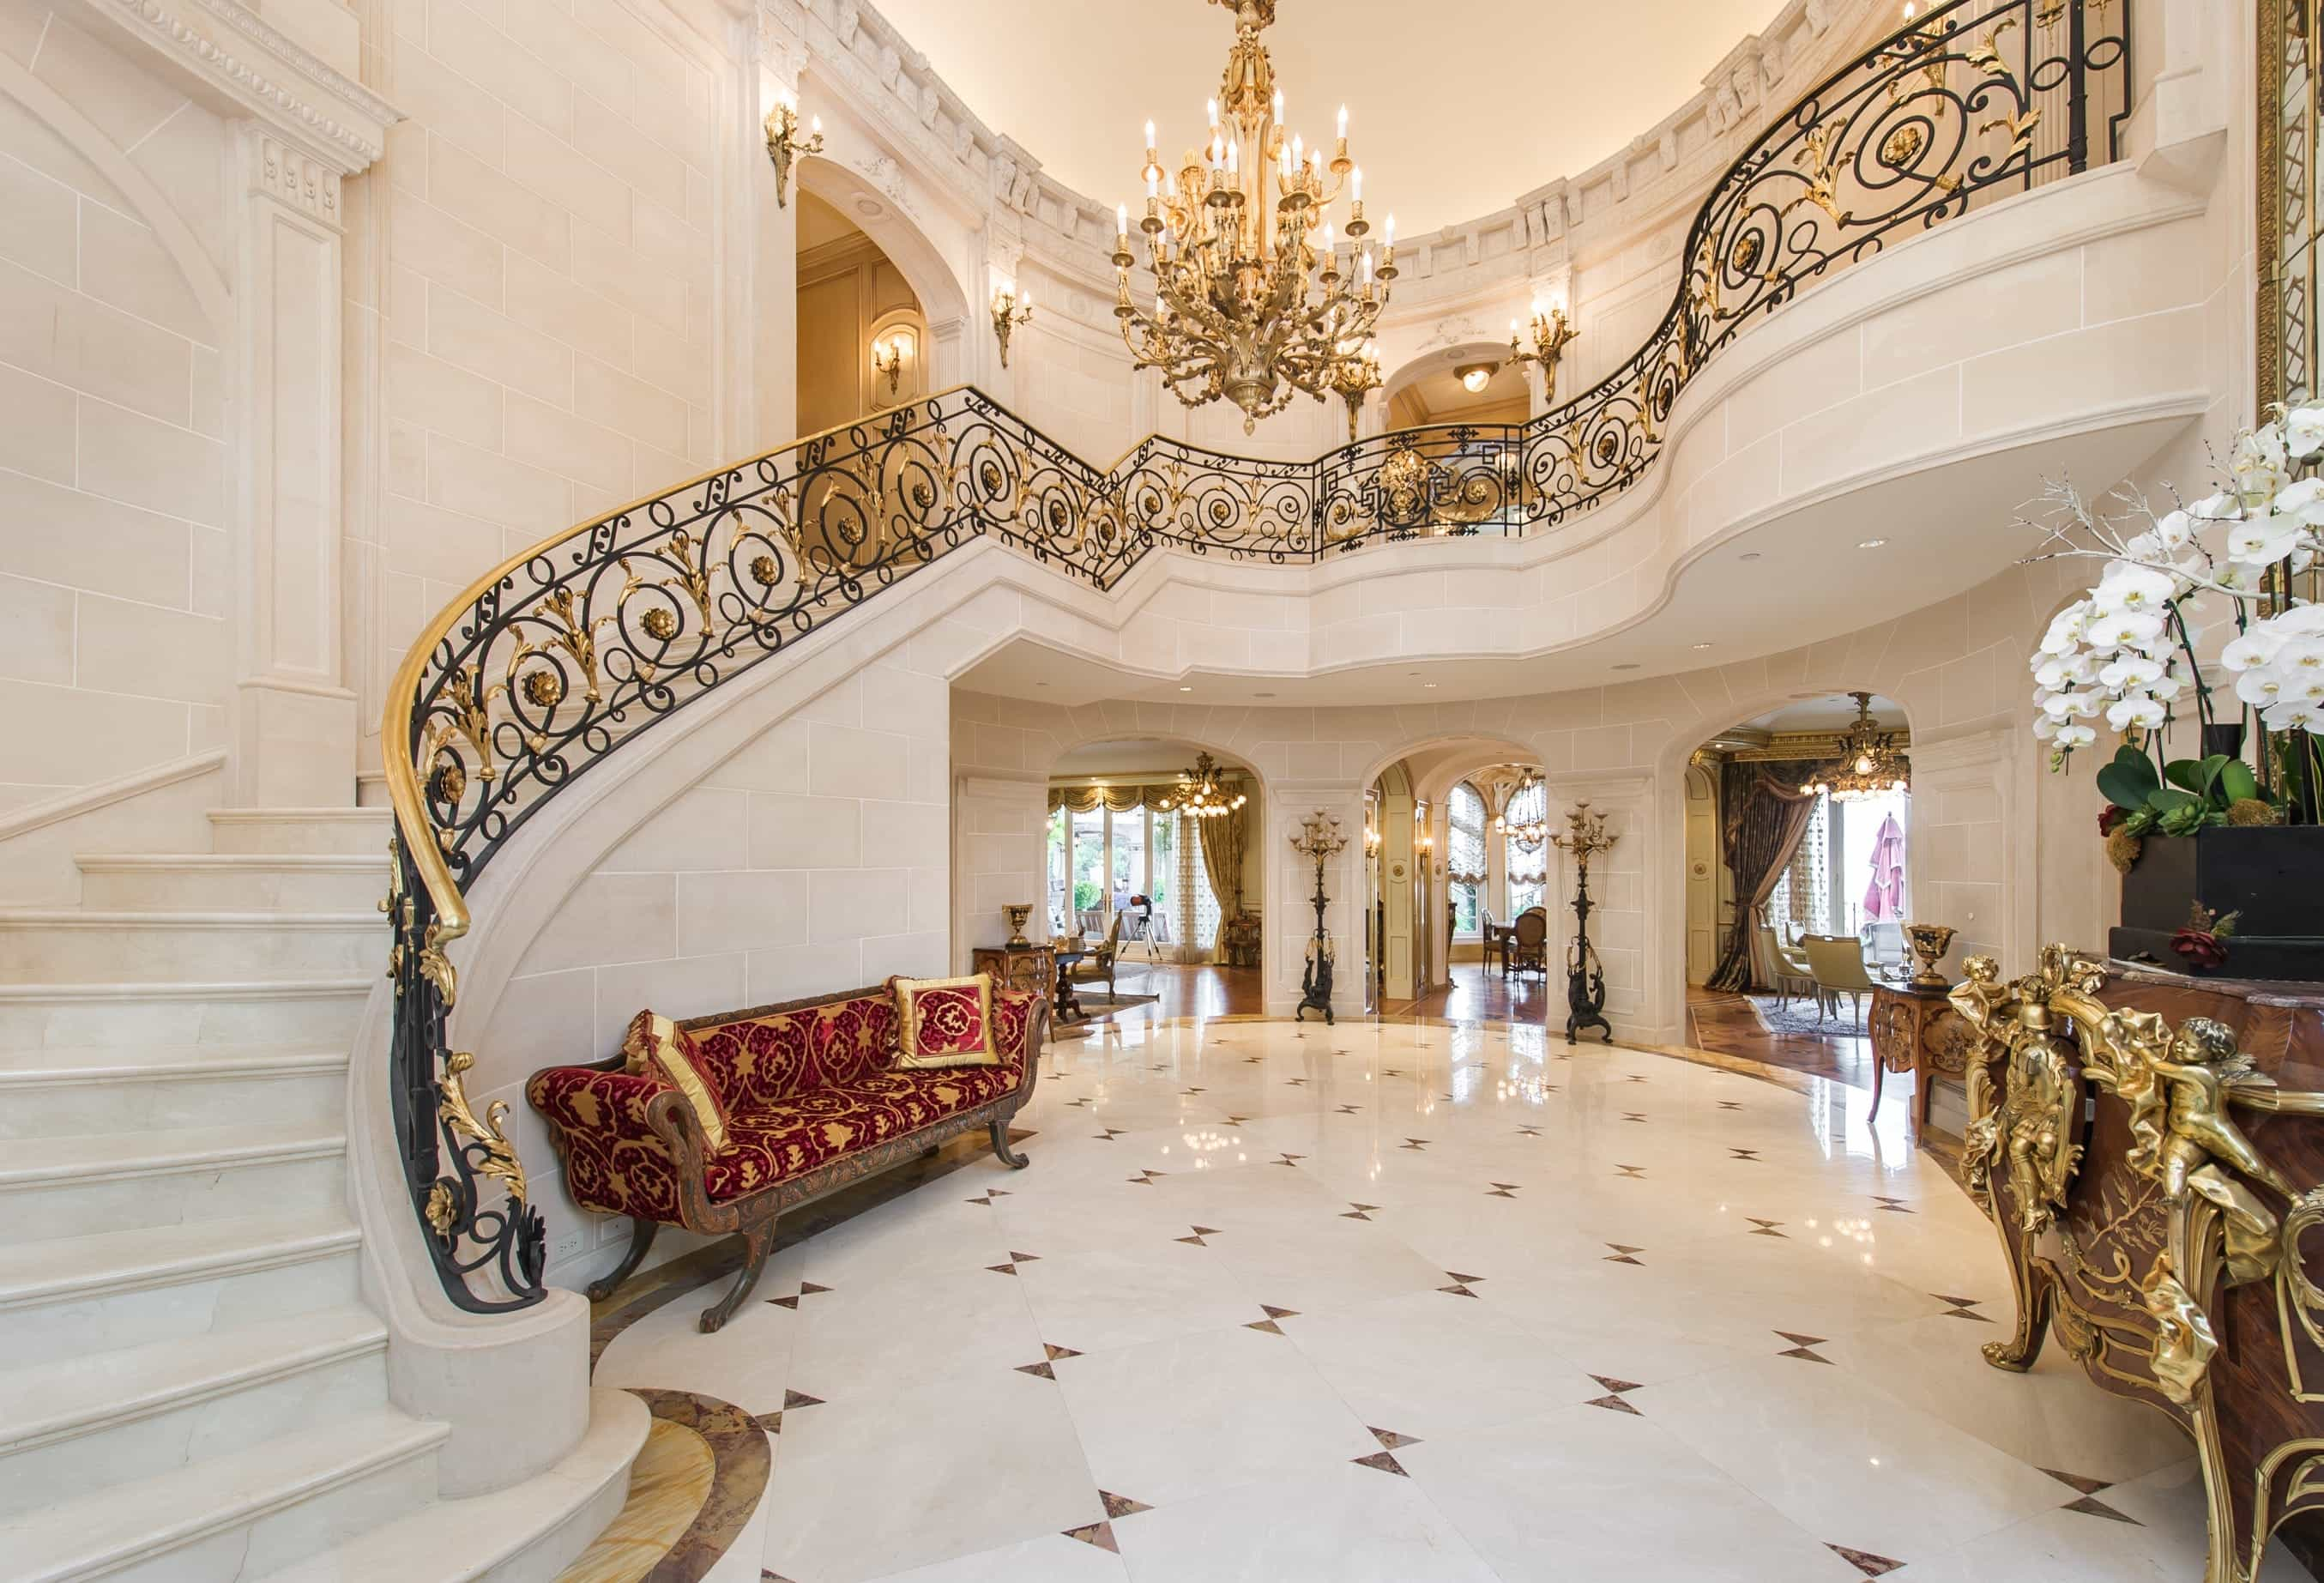 Stunning Luxury European Interior With Marble Flooring And Marble Staircase With Crystal Chandelier (Photo 4 of 13)